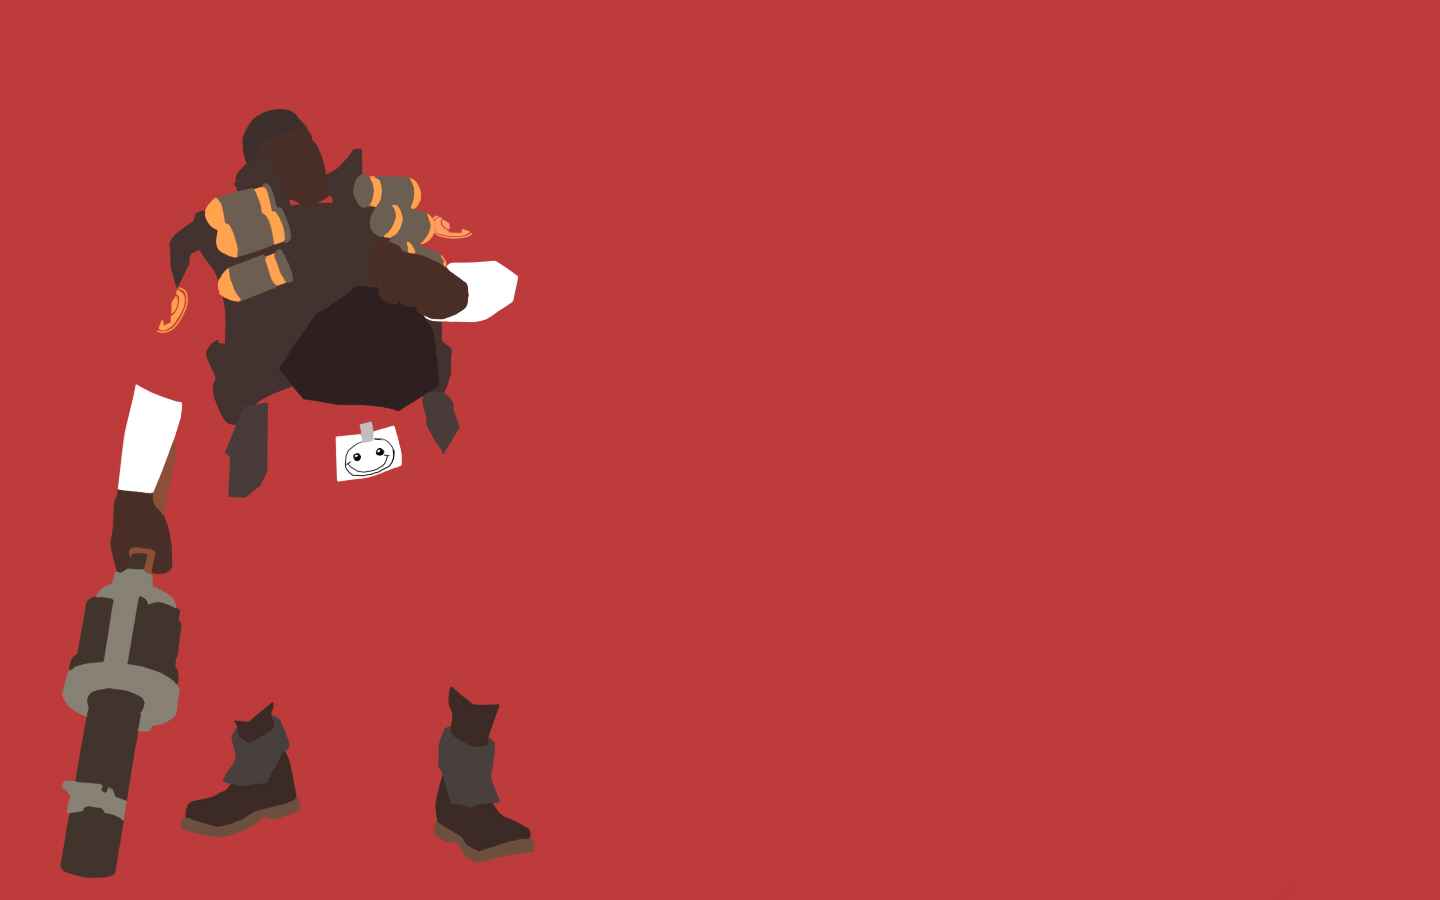 TF2 Red Demoman Minimalist Wallpaper by bohitargep 1440x900